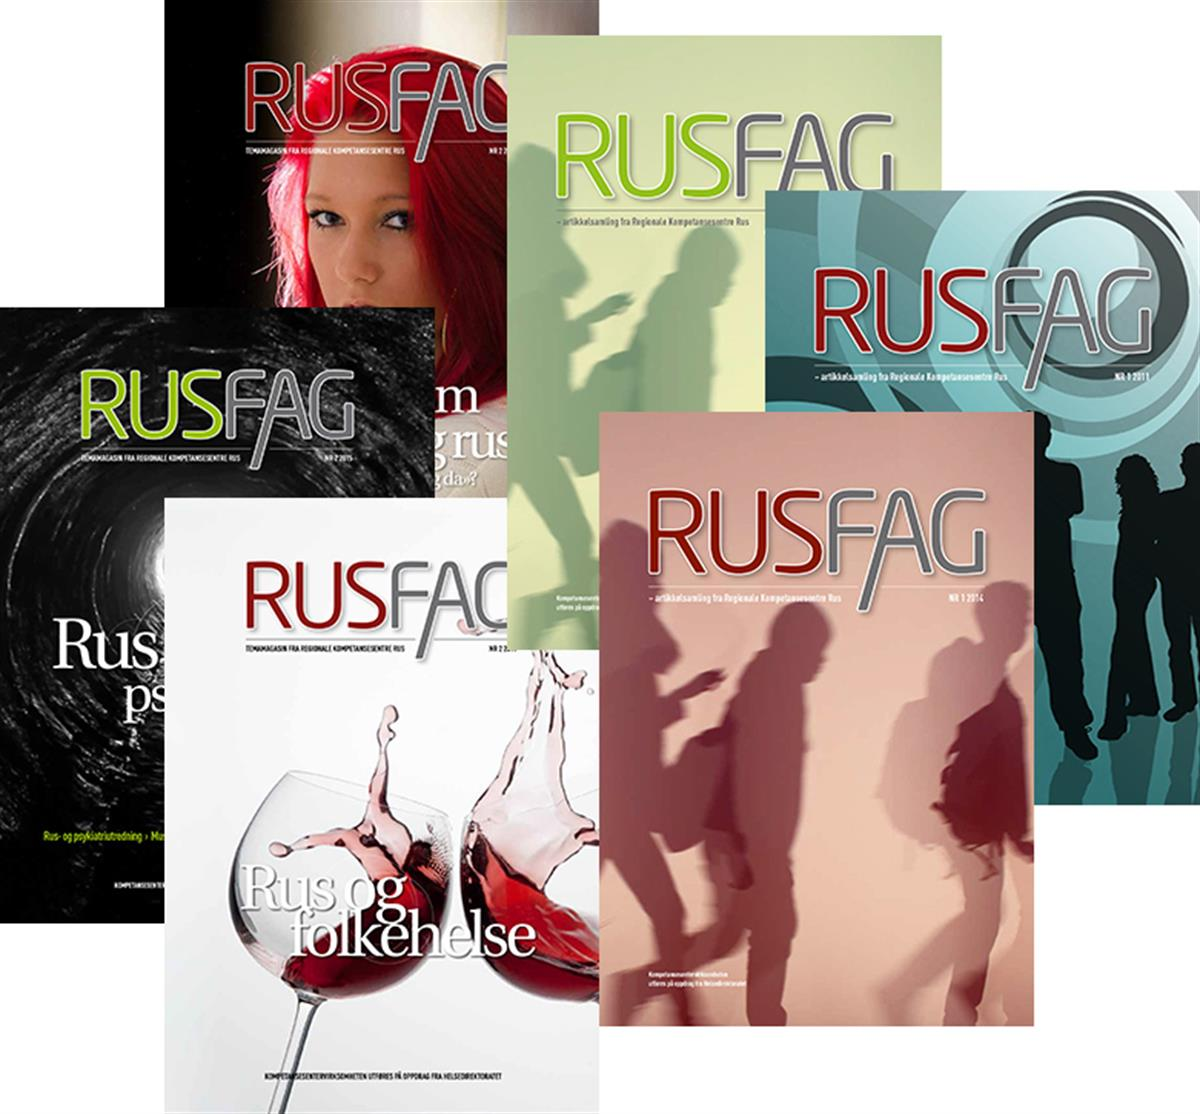 RUSFAG collage